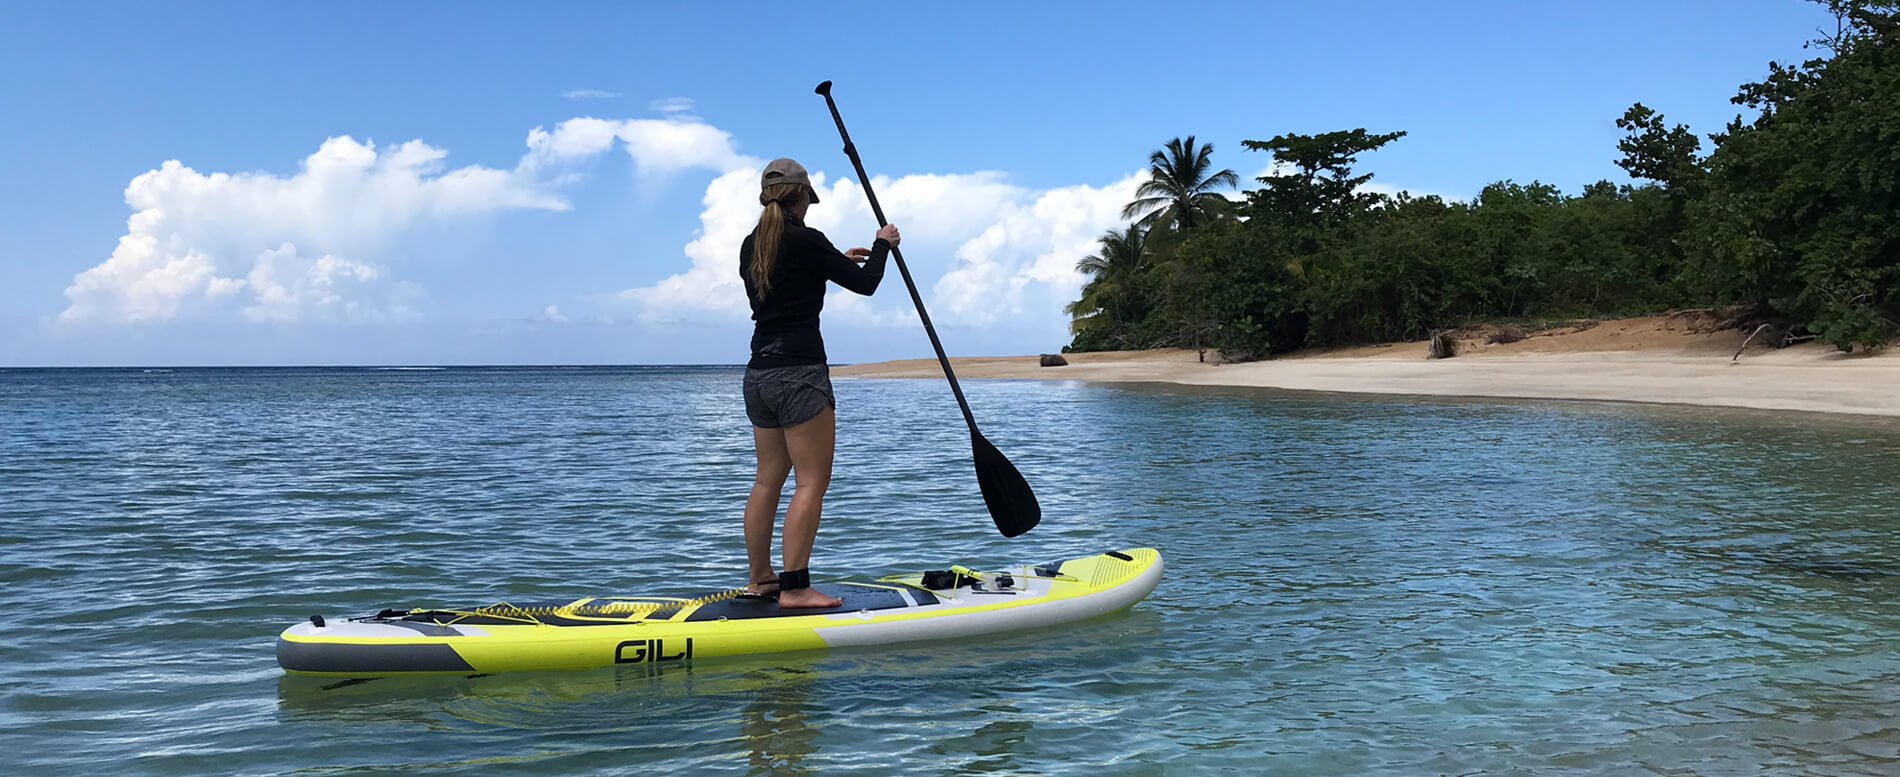 Paddle Board vs Kayak: Why SUP is better than Kayaking